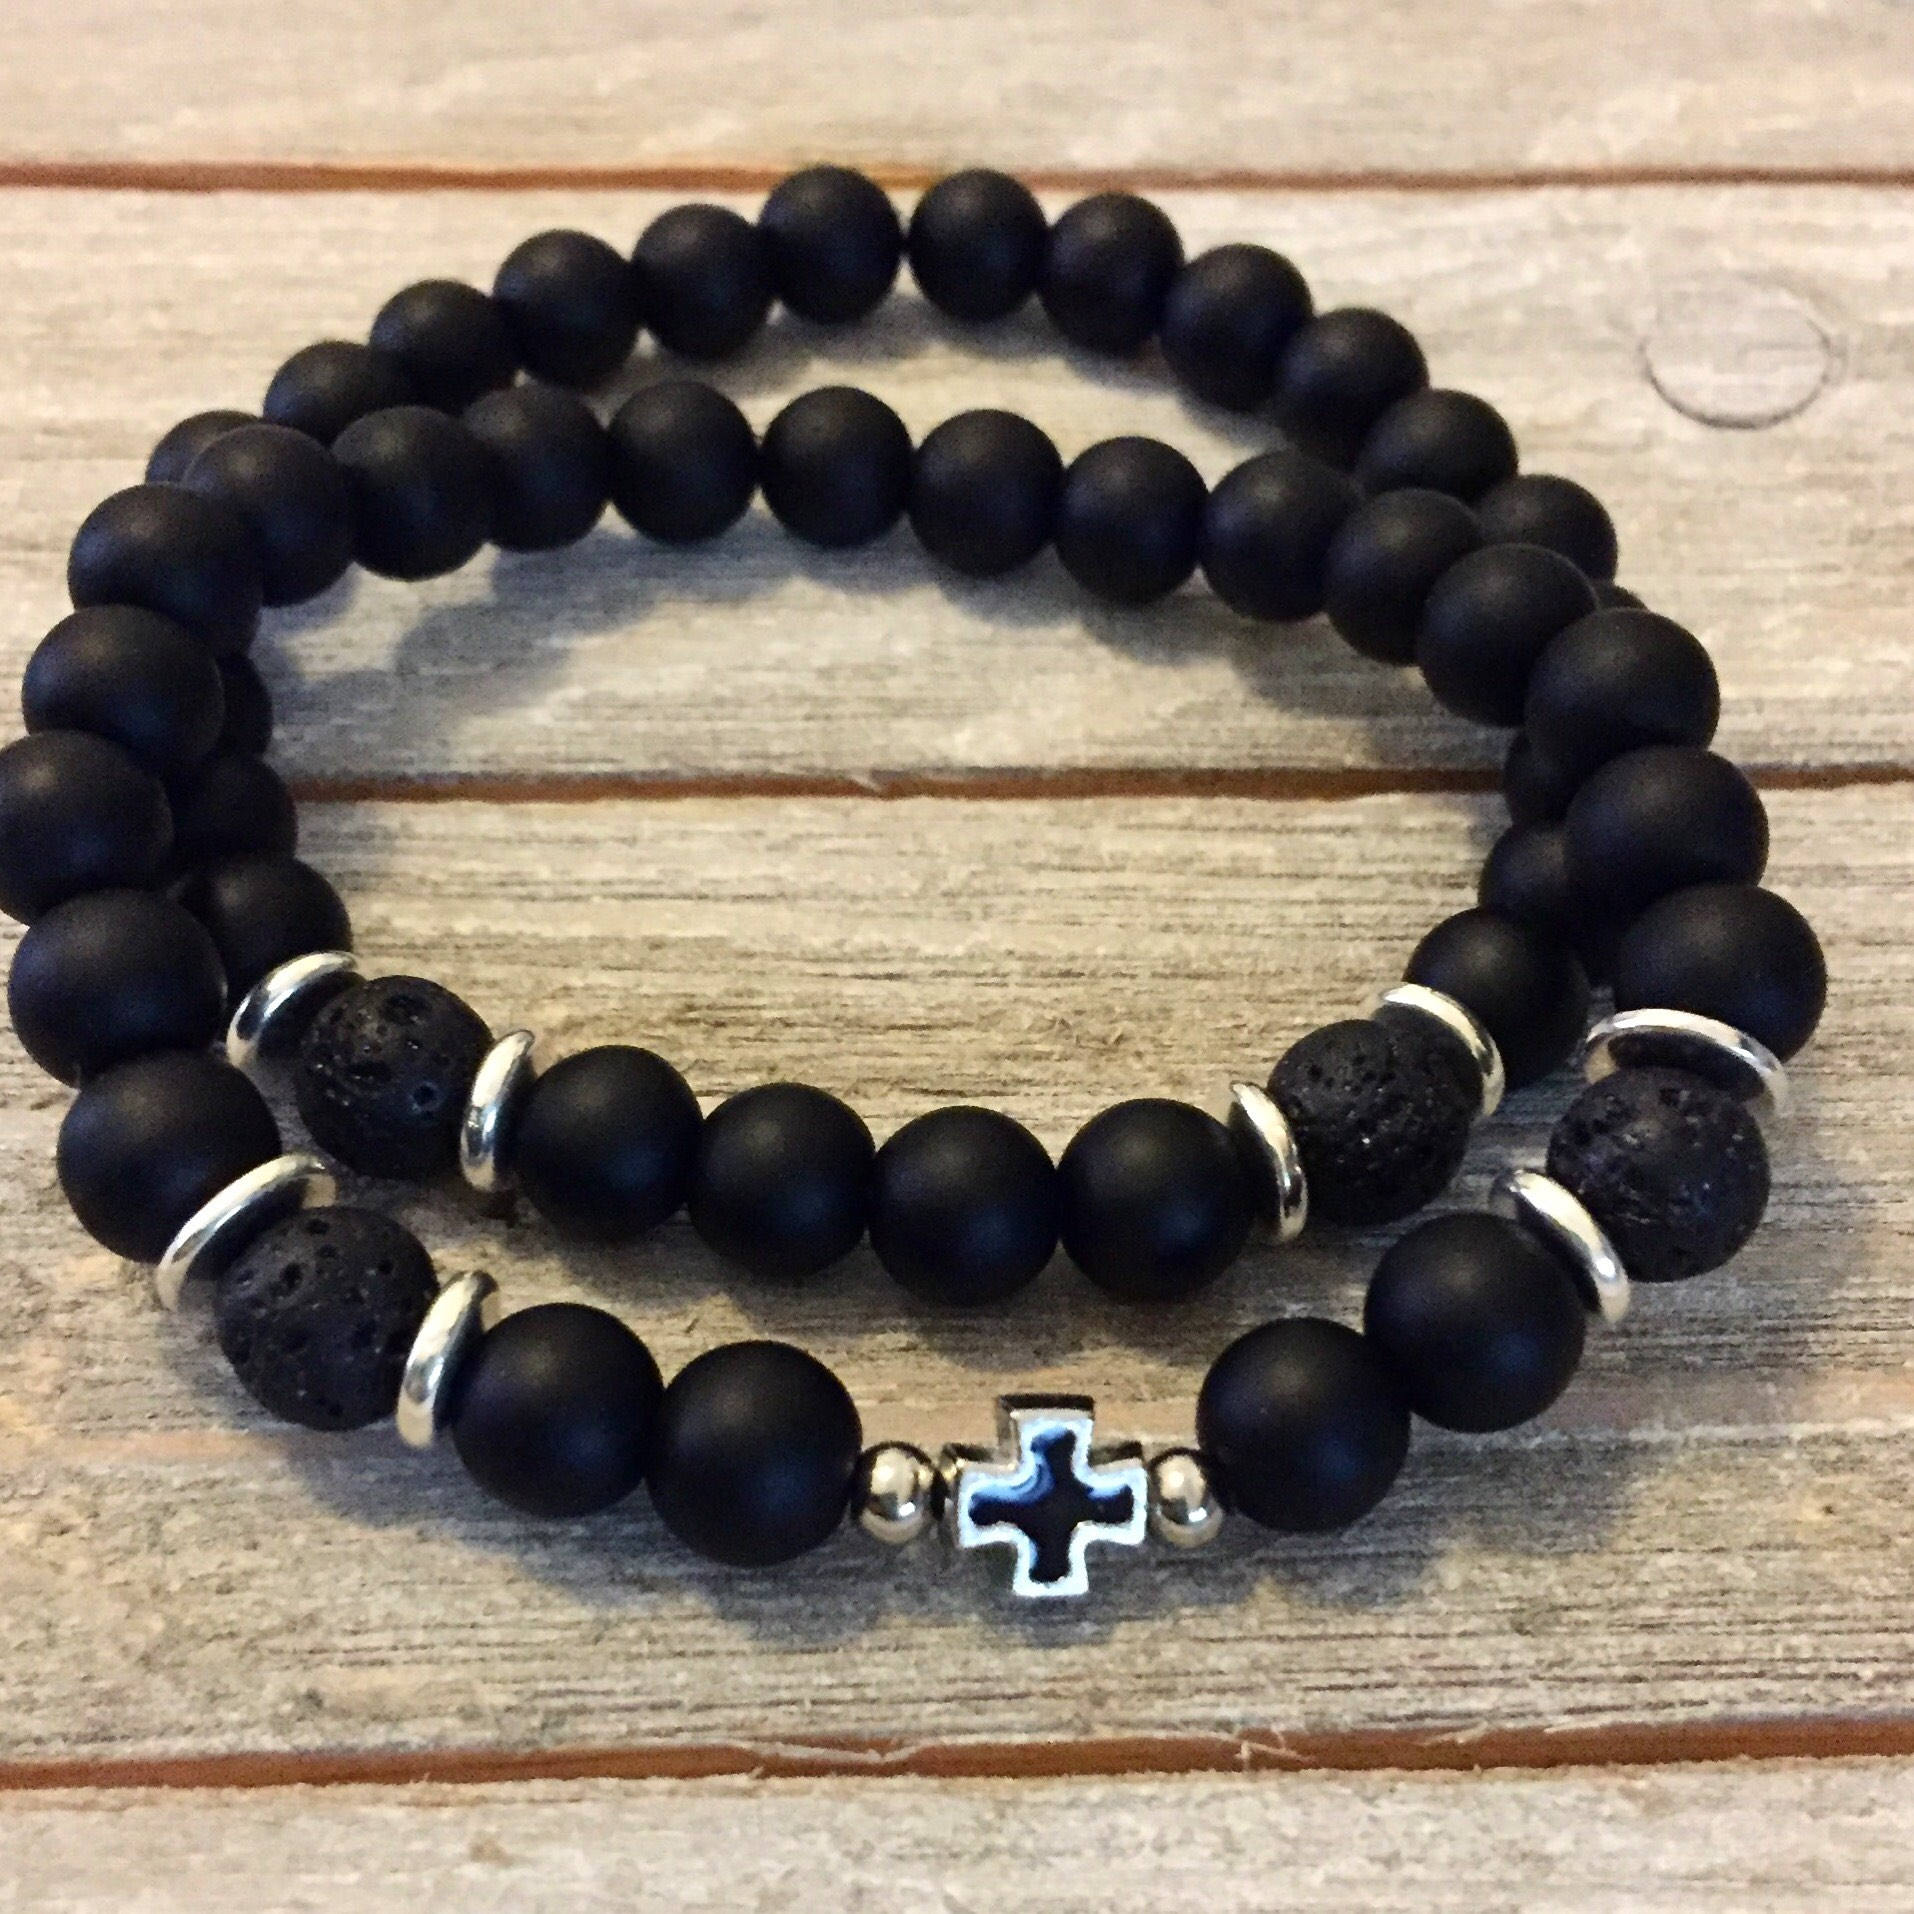 Men Armageddon Trio Tiger/'s Eye /& Onyx and Black Lava Bracelets with Charms  Strength and Courage  Powerful bracelet